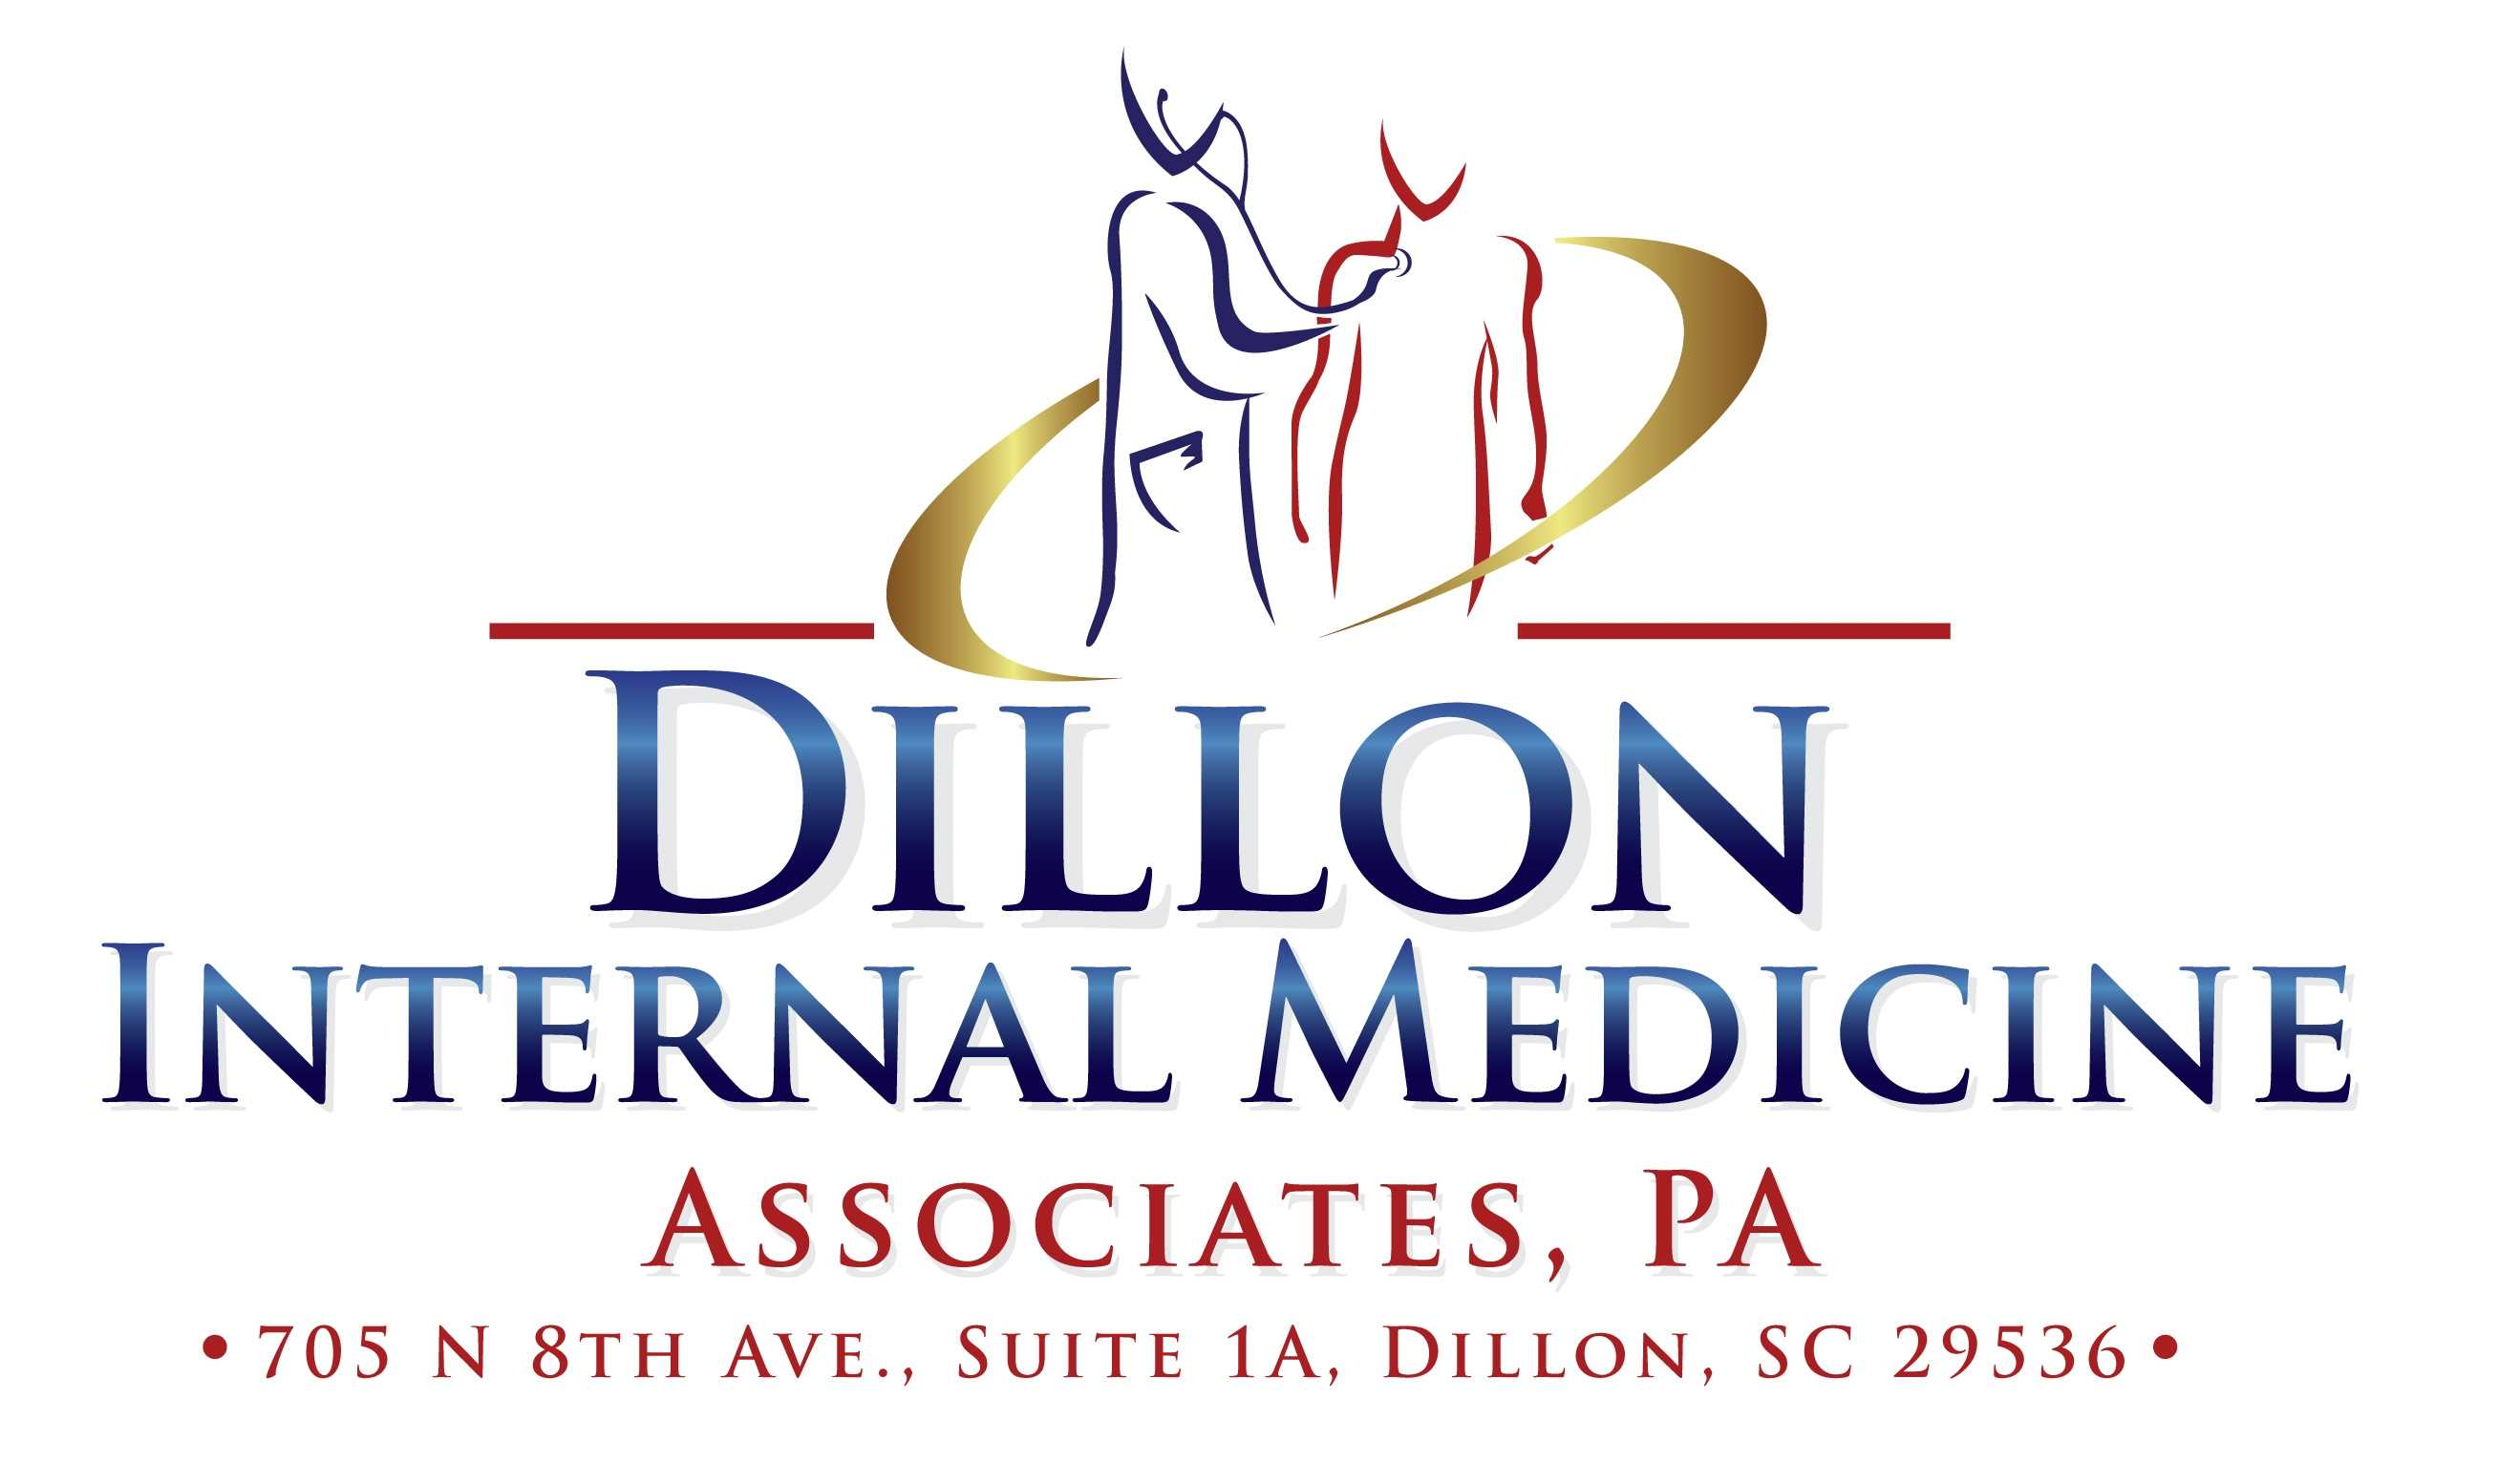 Dillon Internal Medicine